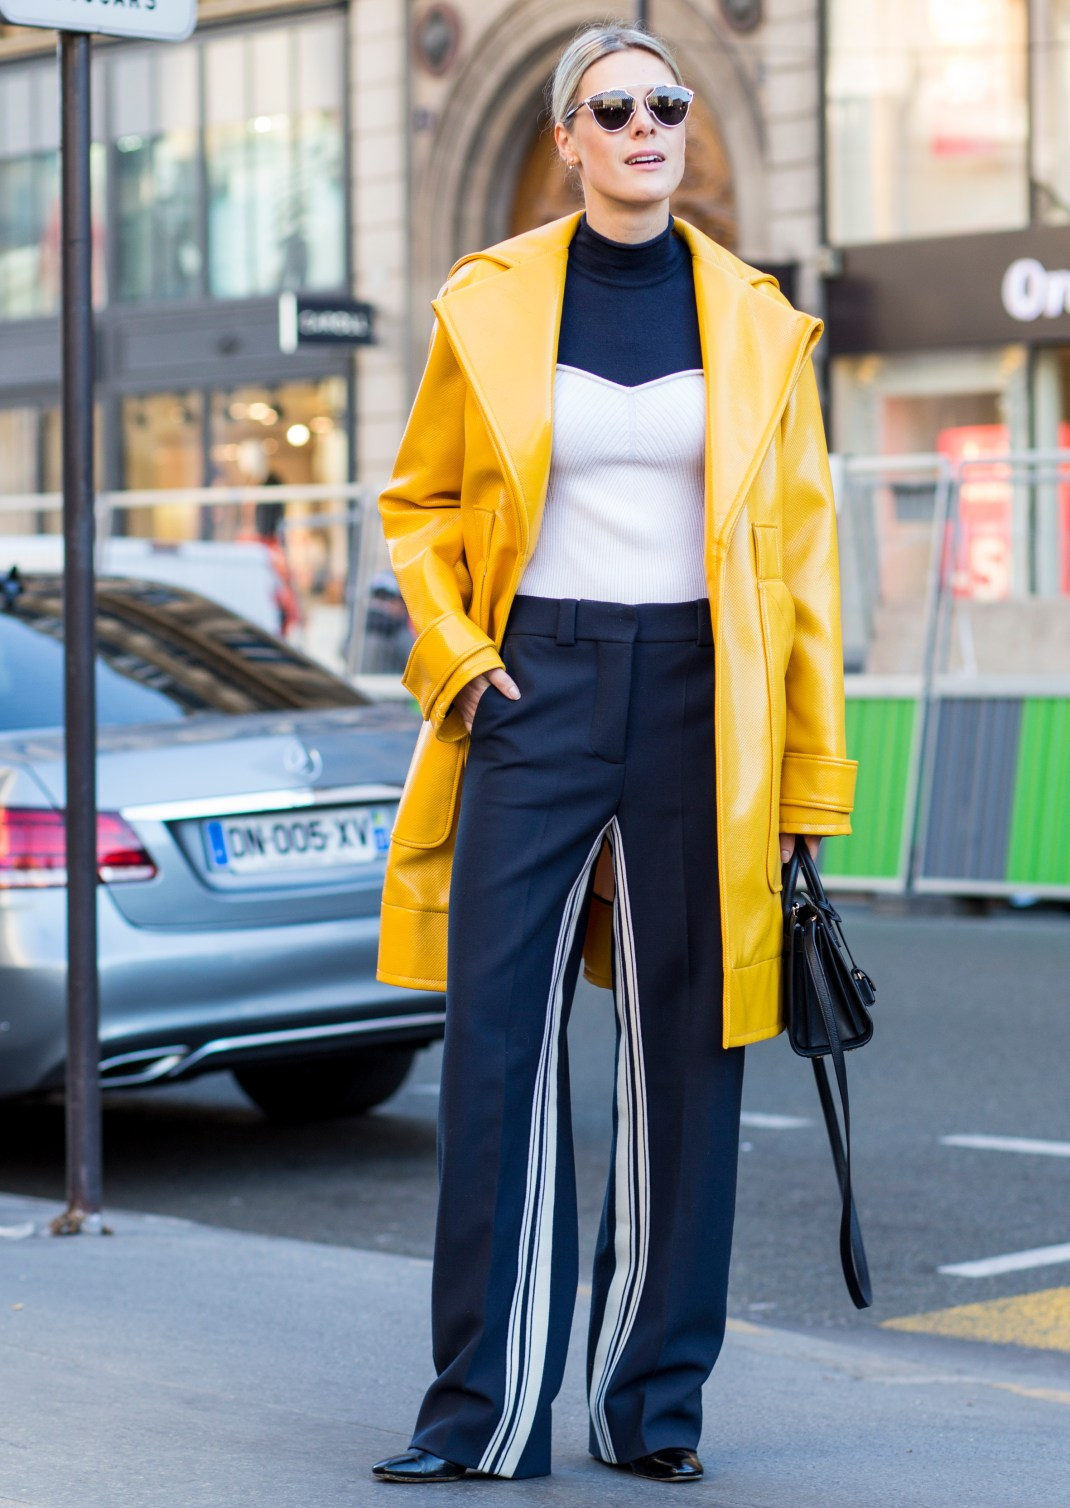 woman wearing navy and yellow